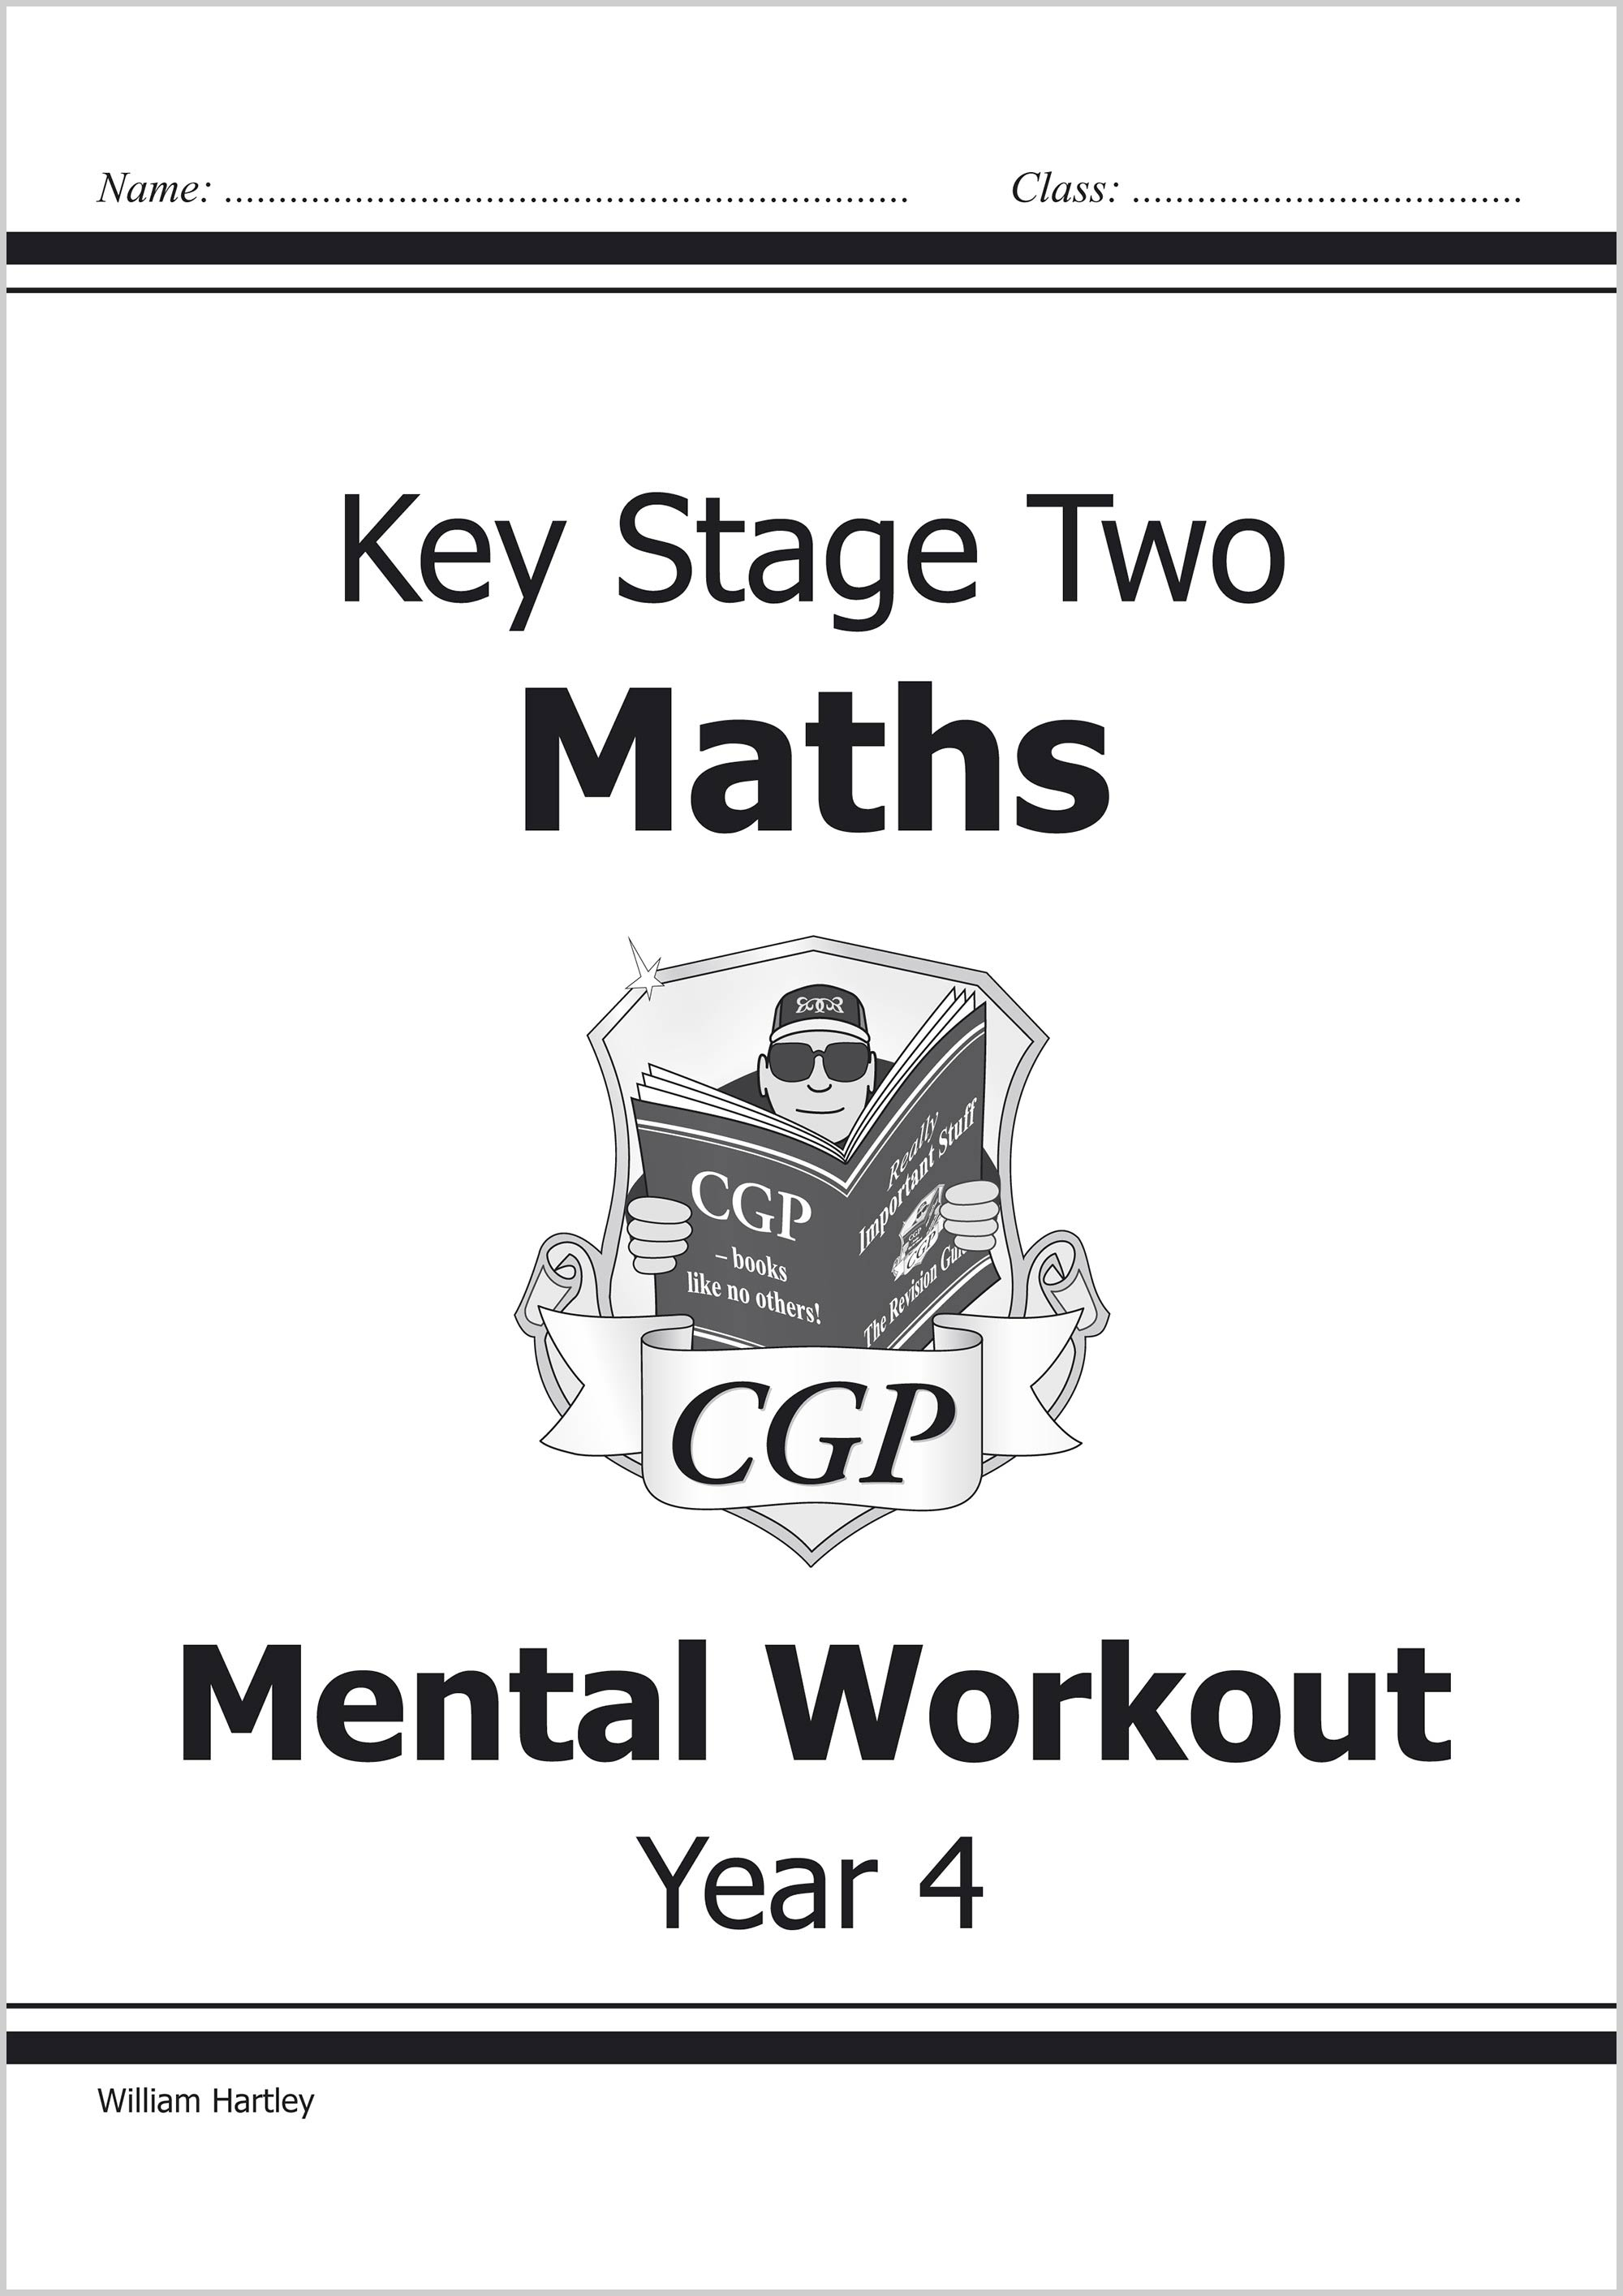 M4MA22 - KS2 Mental Maths Workout - Year 4